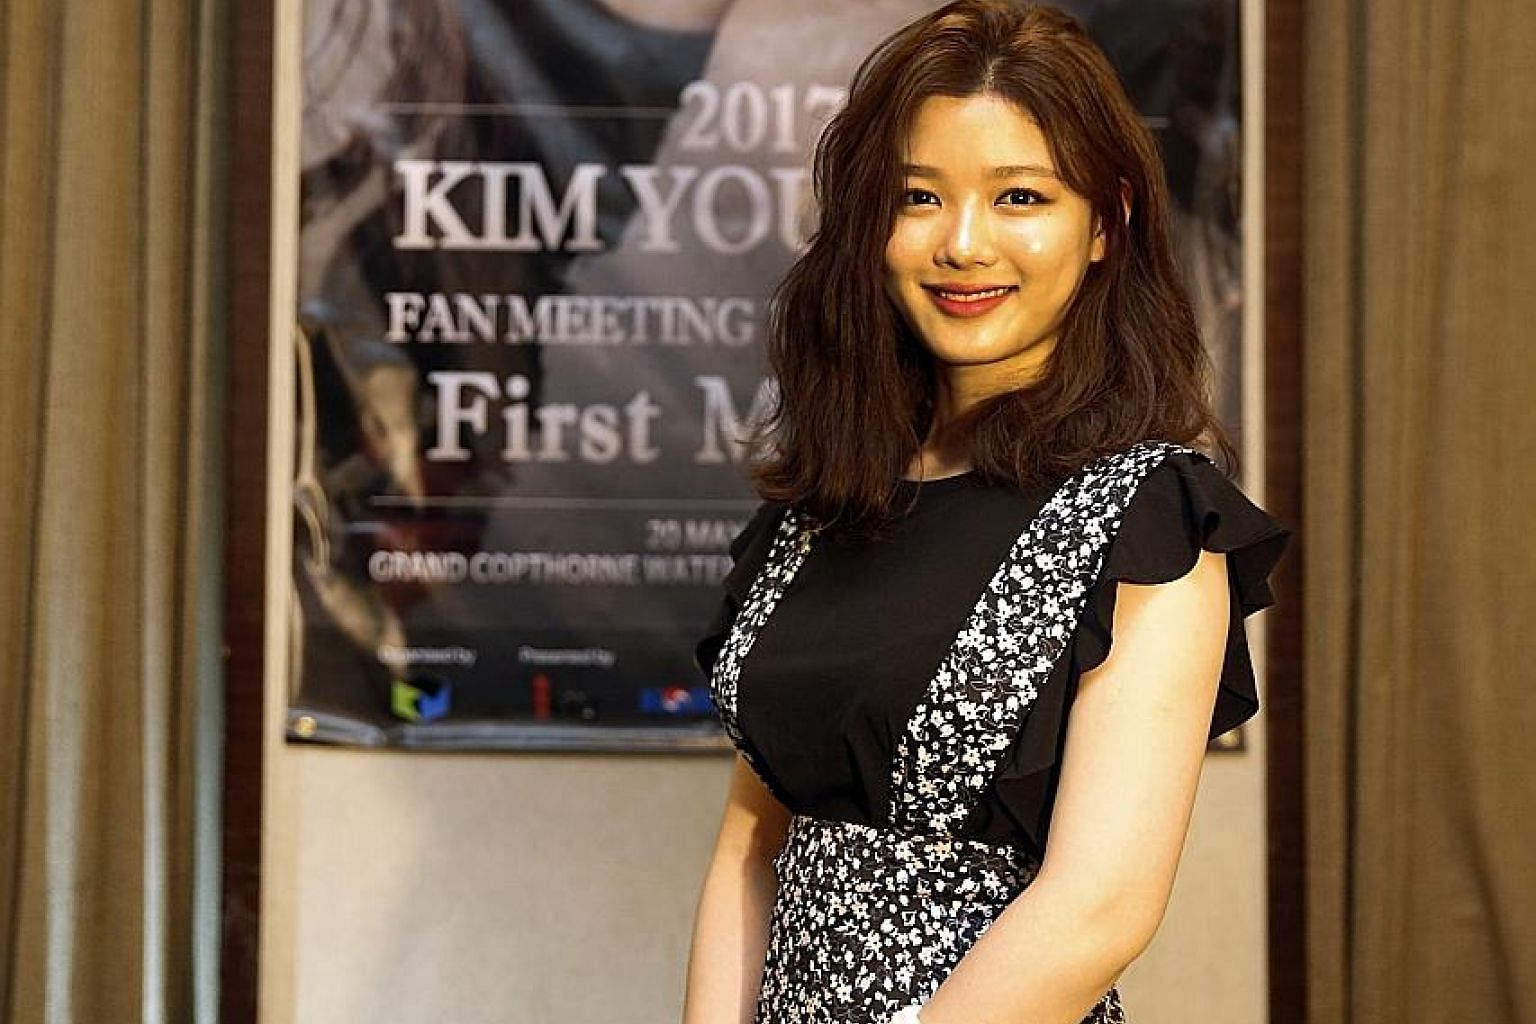 Kim You Jung, 17, has acted in more than 50 films and TV dramas since the age of four.